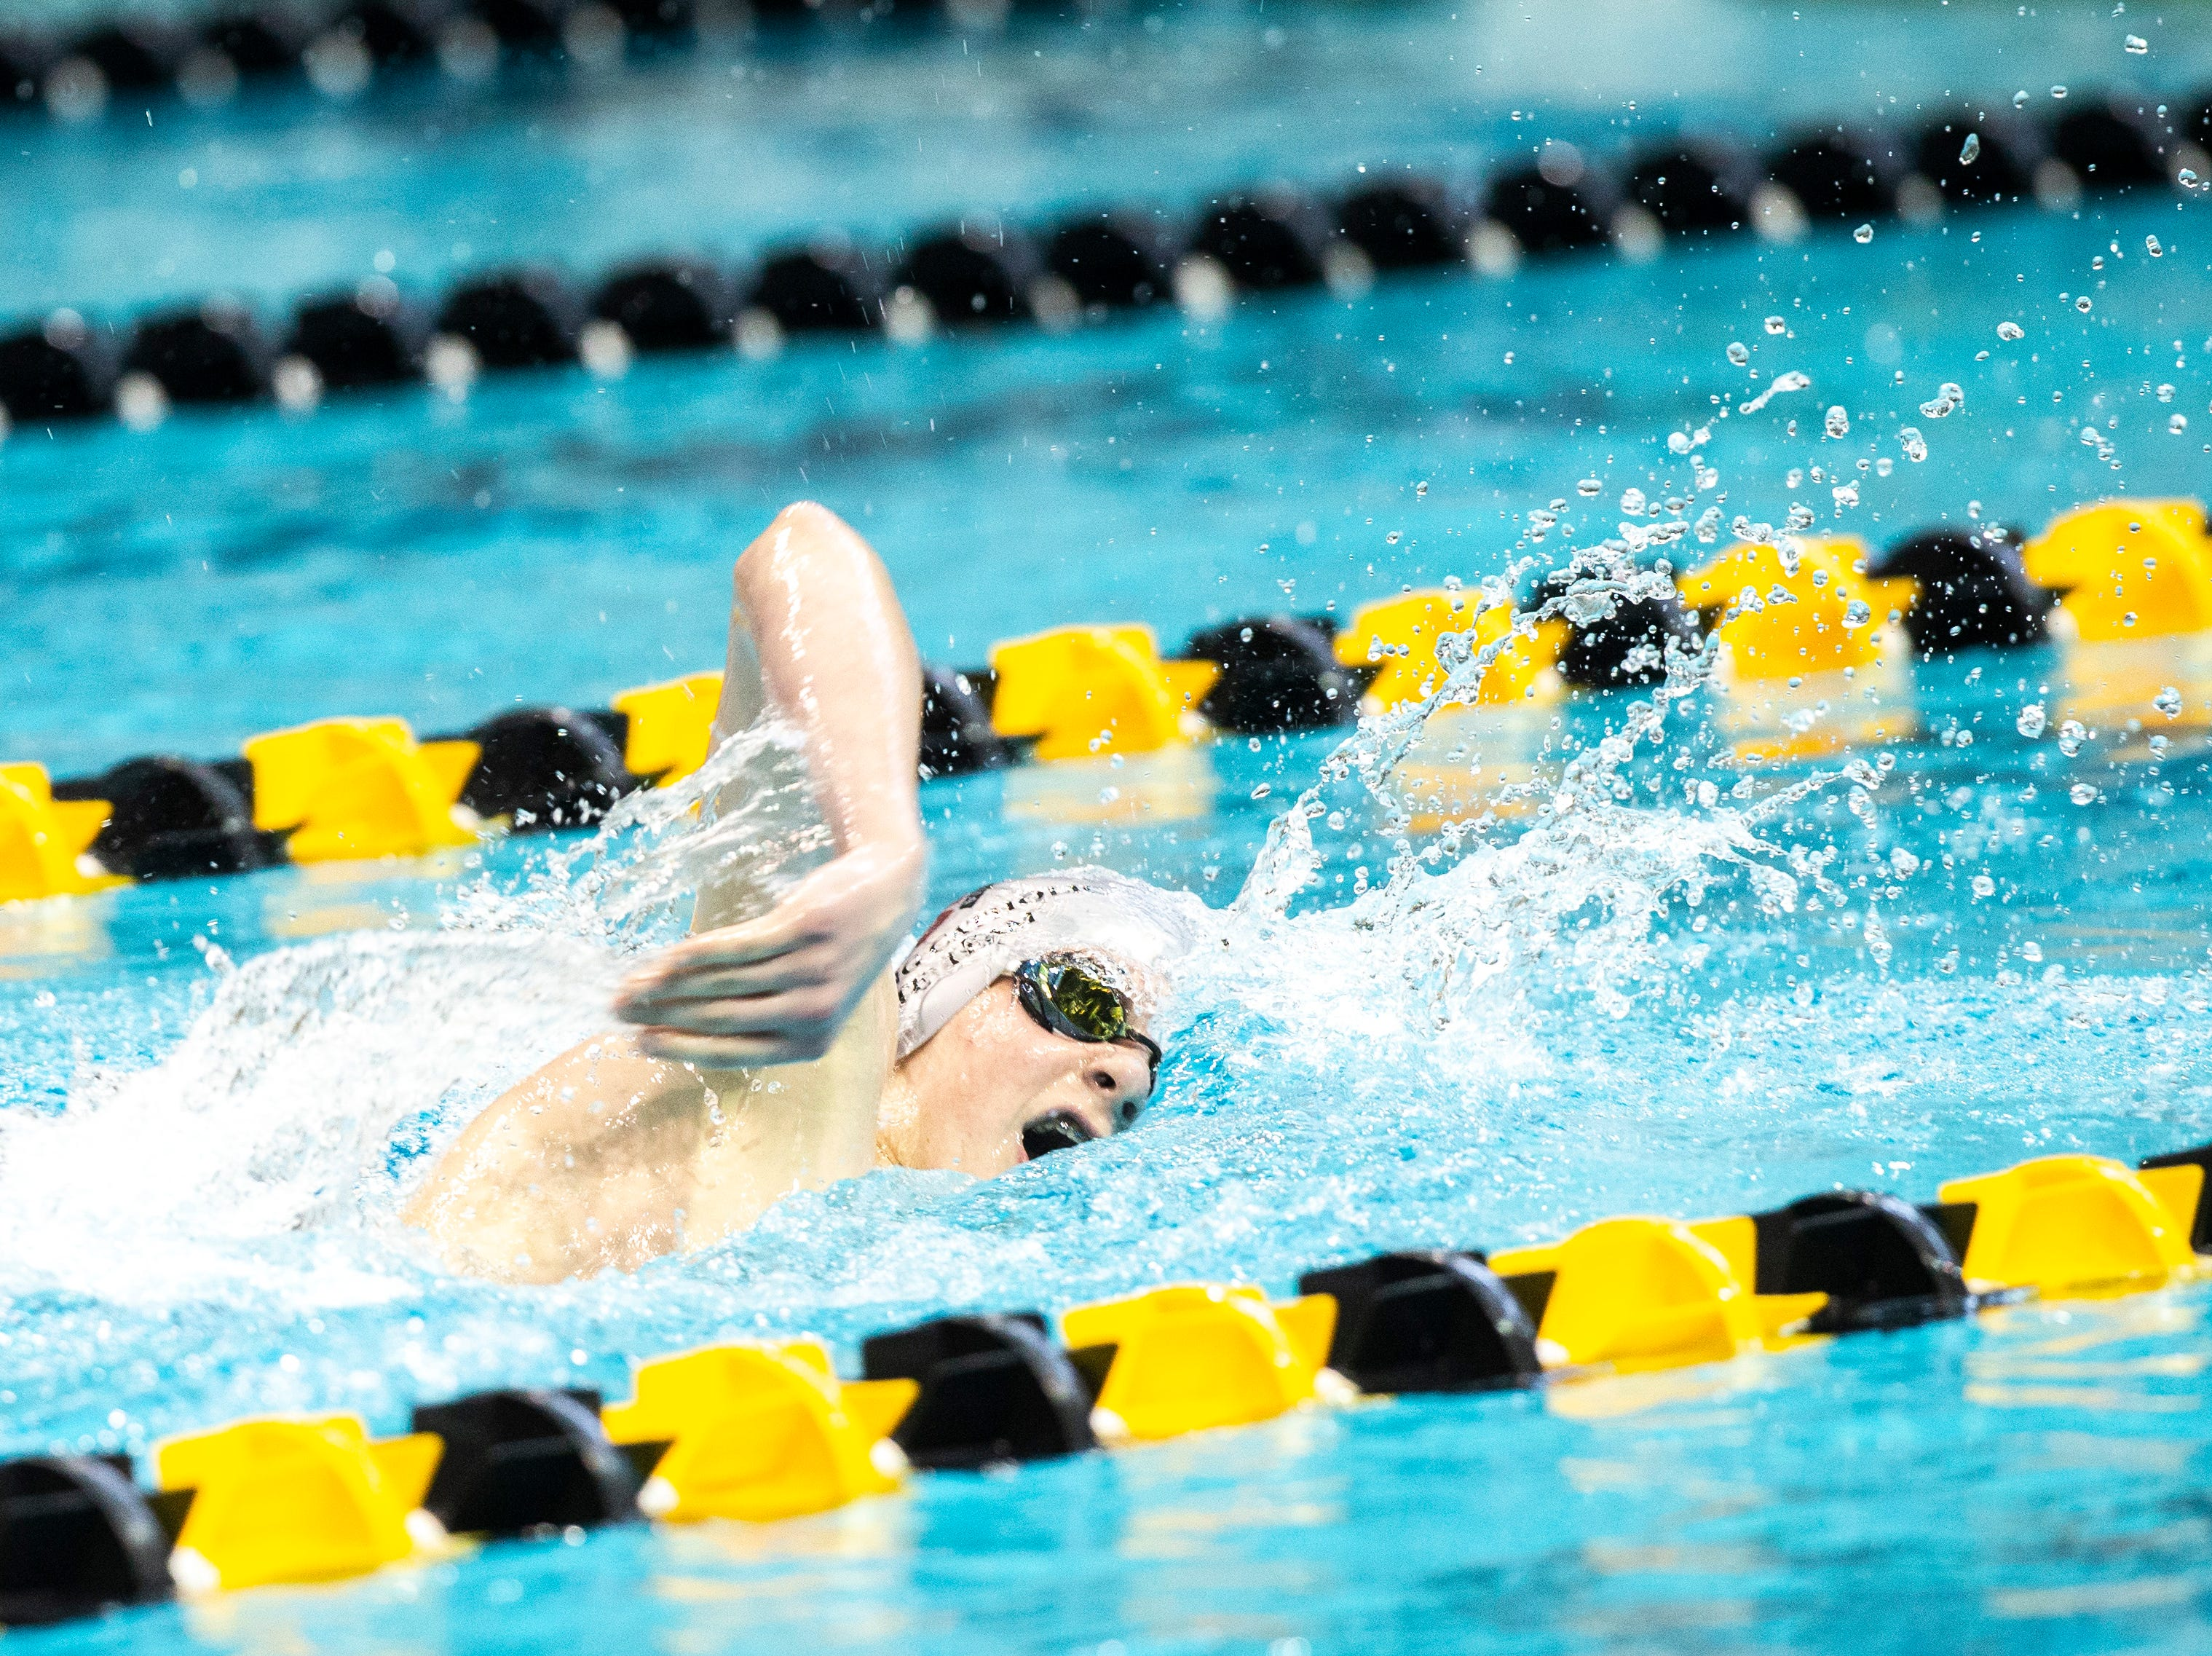 Dowling Catholic freshman Joey Hancock competes in the first heat of 500 yard freestyle during the Iowa boys' state swimming regional championship meet on Saturday, Feb. 9, 2019 at Campus Recreation and Wellness Center on the University of Iowa campus in Iowa City, Iowa. Hancock finished 12th overall, with a time of 4:48.86.